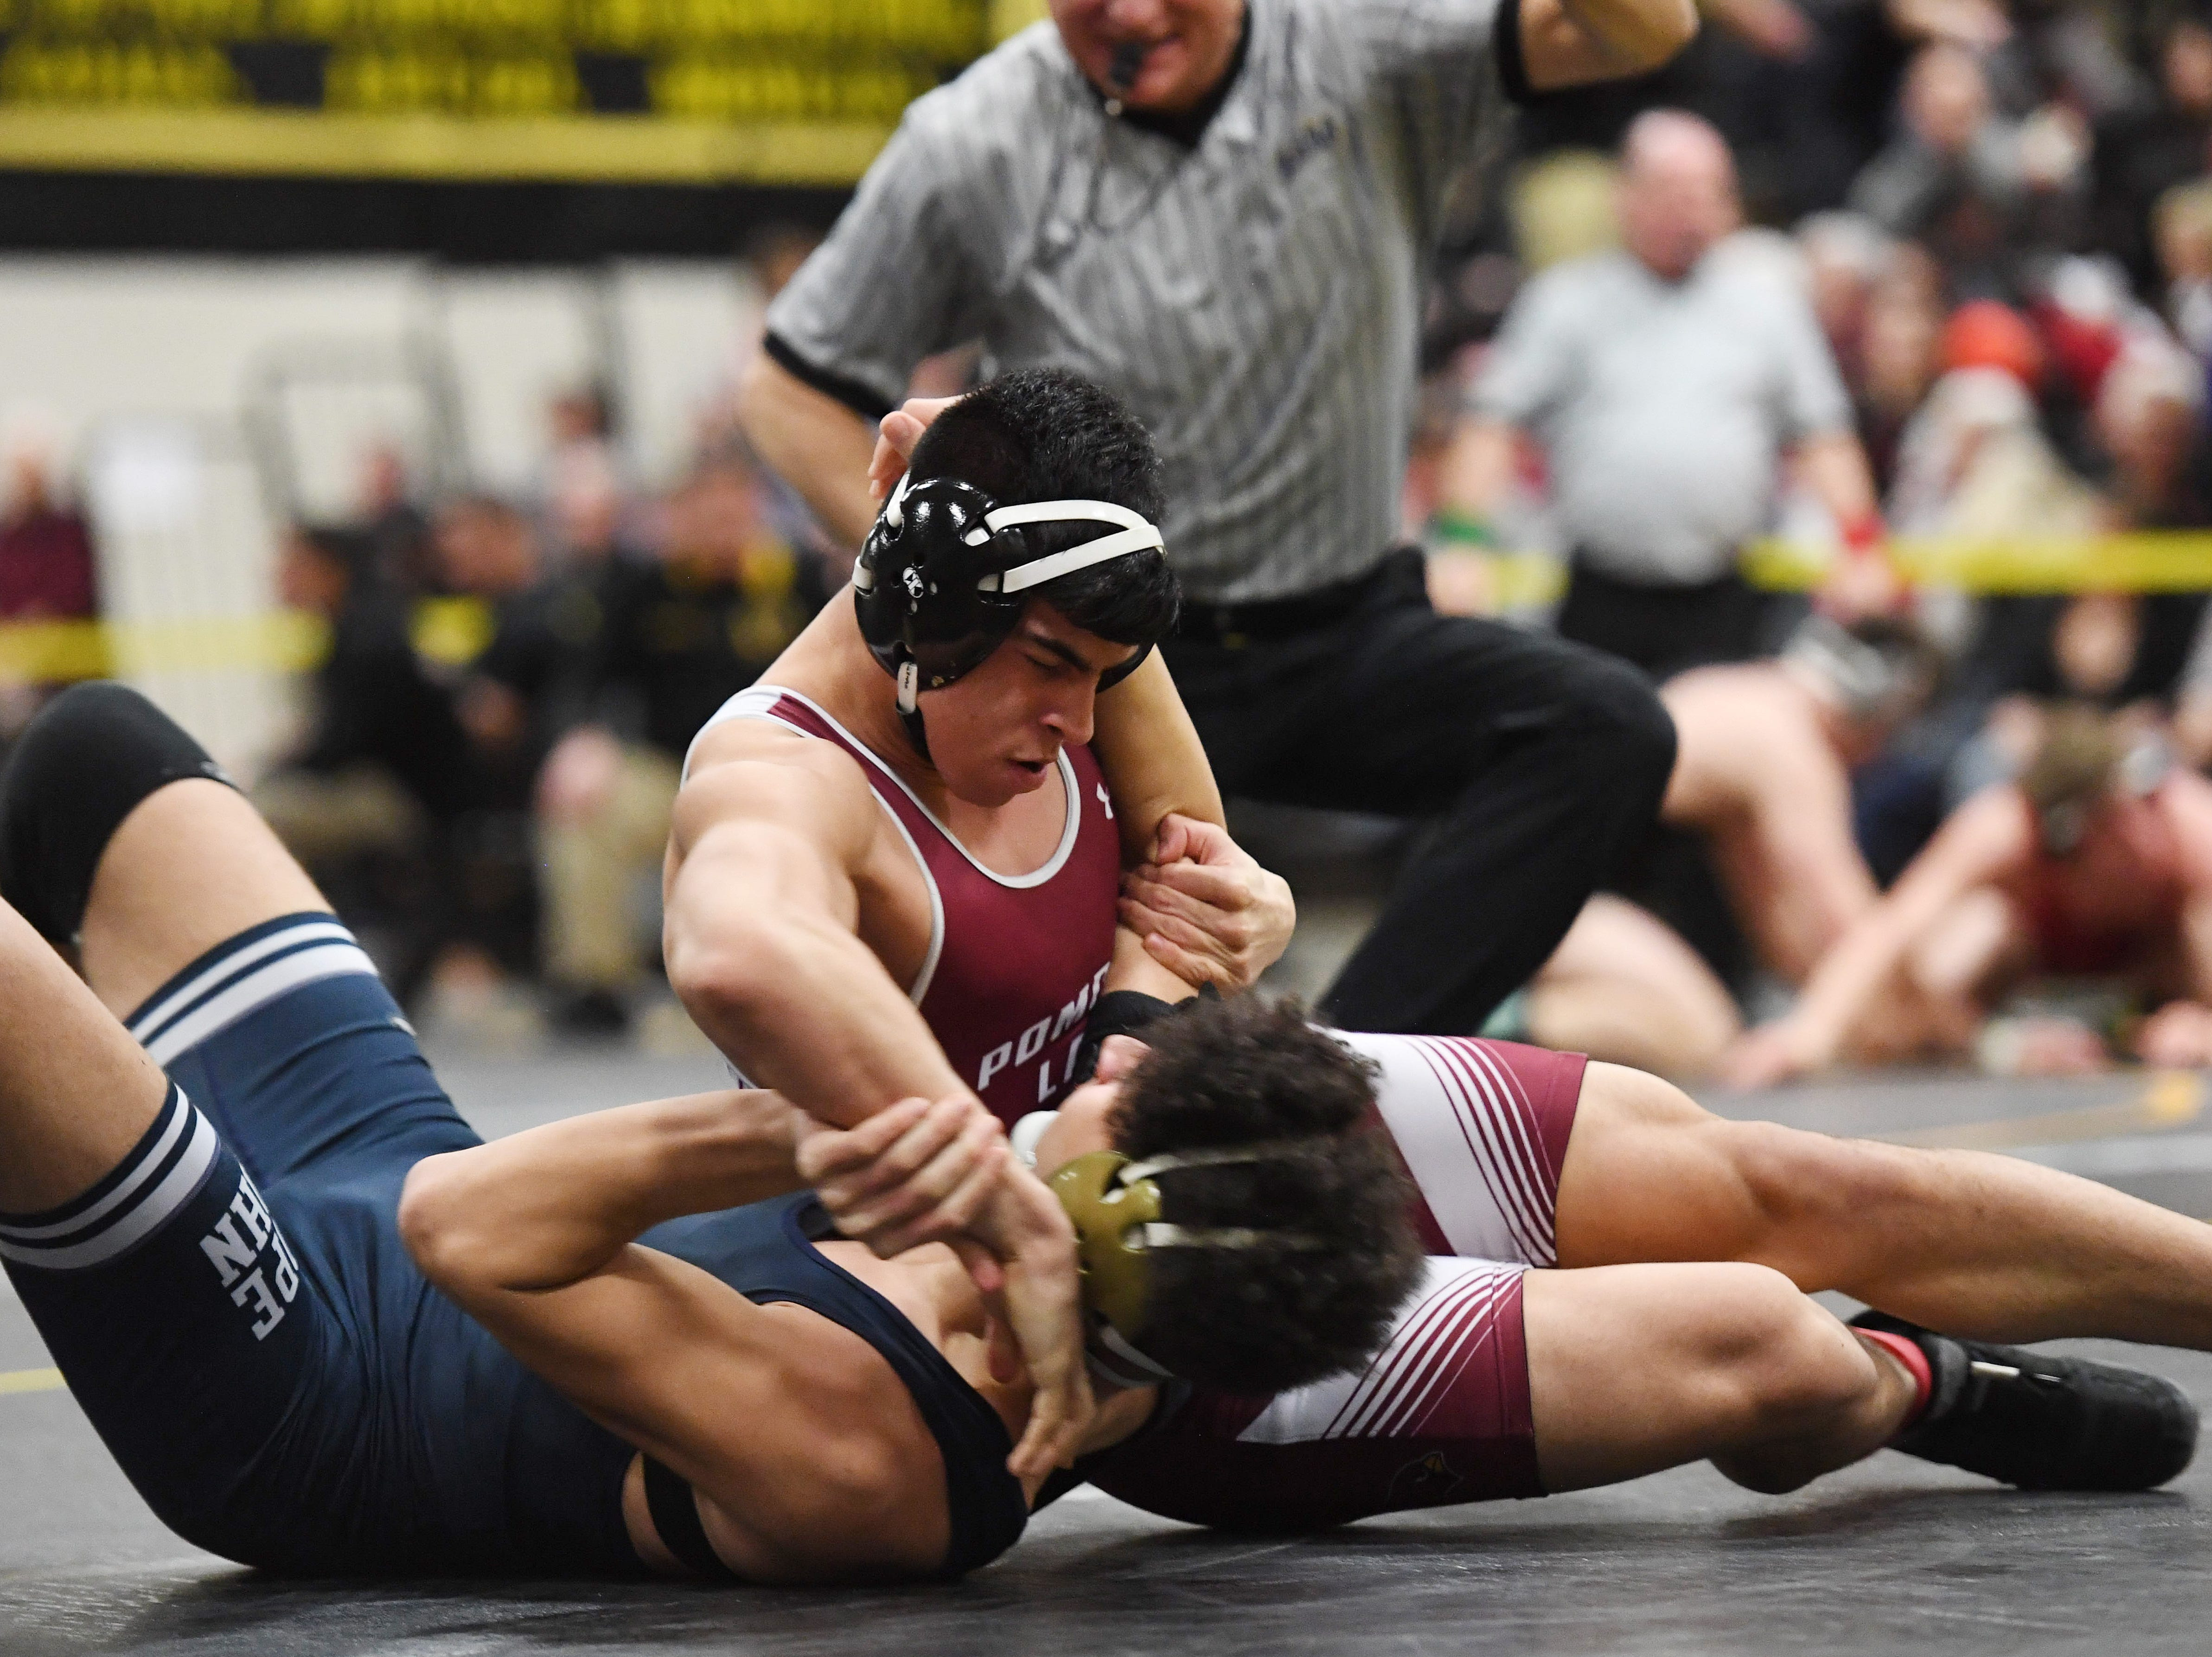 Region 1 wrestling tournament at West Milford High School on Thursday, February 21, 2019. Ramon Hernandez (Pompton Lakes) on his way to defeating Peter Delaportas (Pope John XXIII) in their 182 pound match.